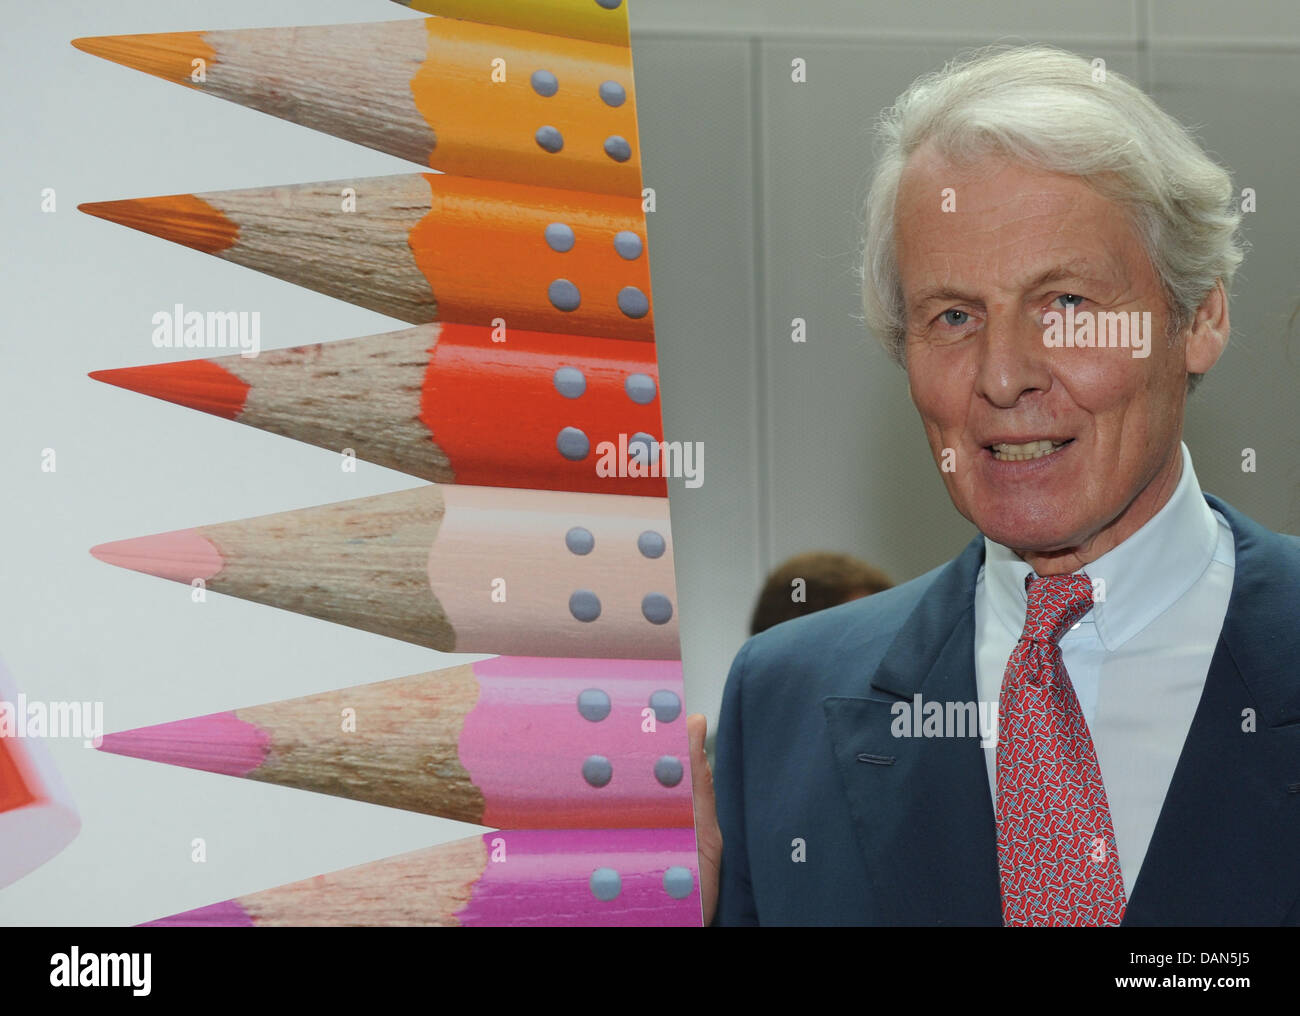 Head of the company Anton Wolfgang Duke of Faber Castell poses next to a picture of pencils after the official ceremony - Stock Image